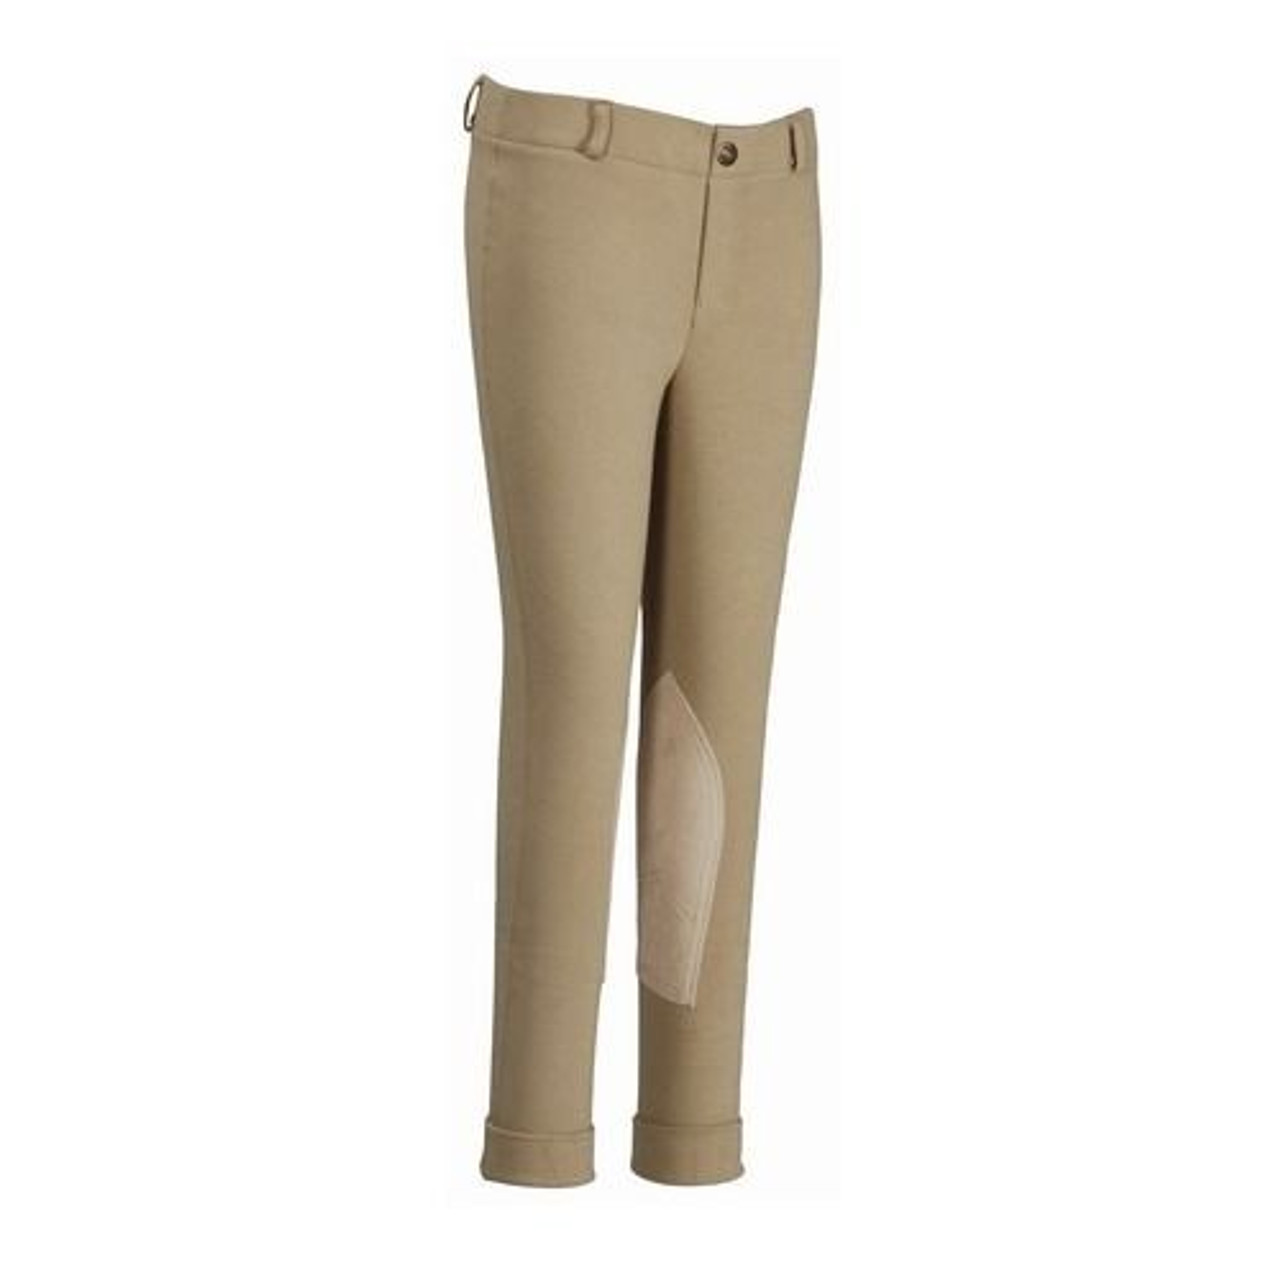 Color:Tan Size:10 EquiStar Childs Pull On Cuff Jod